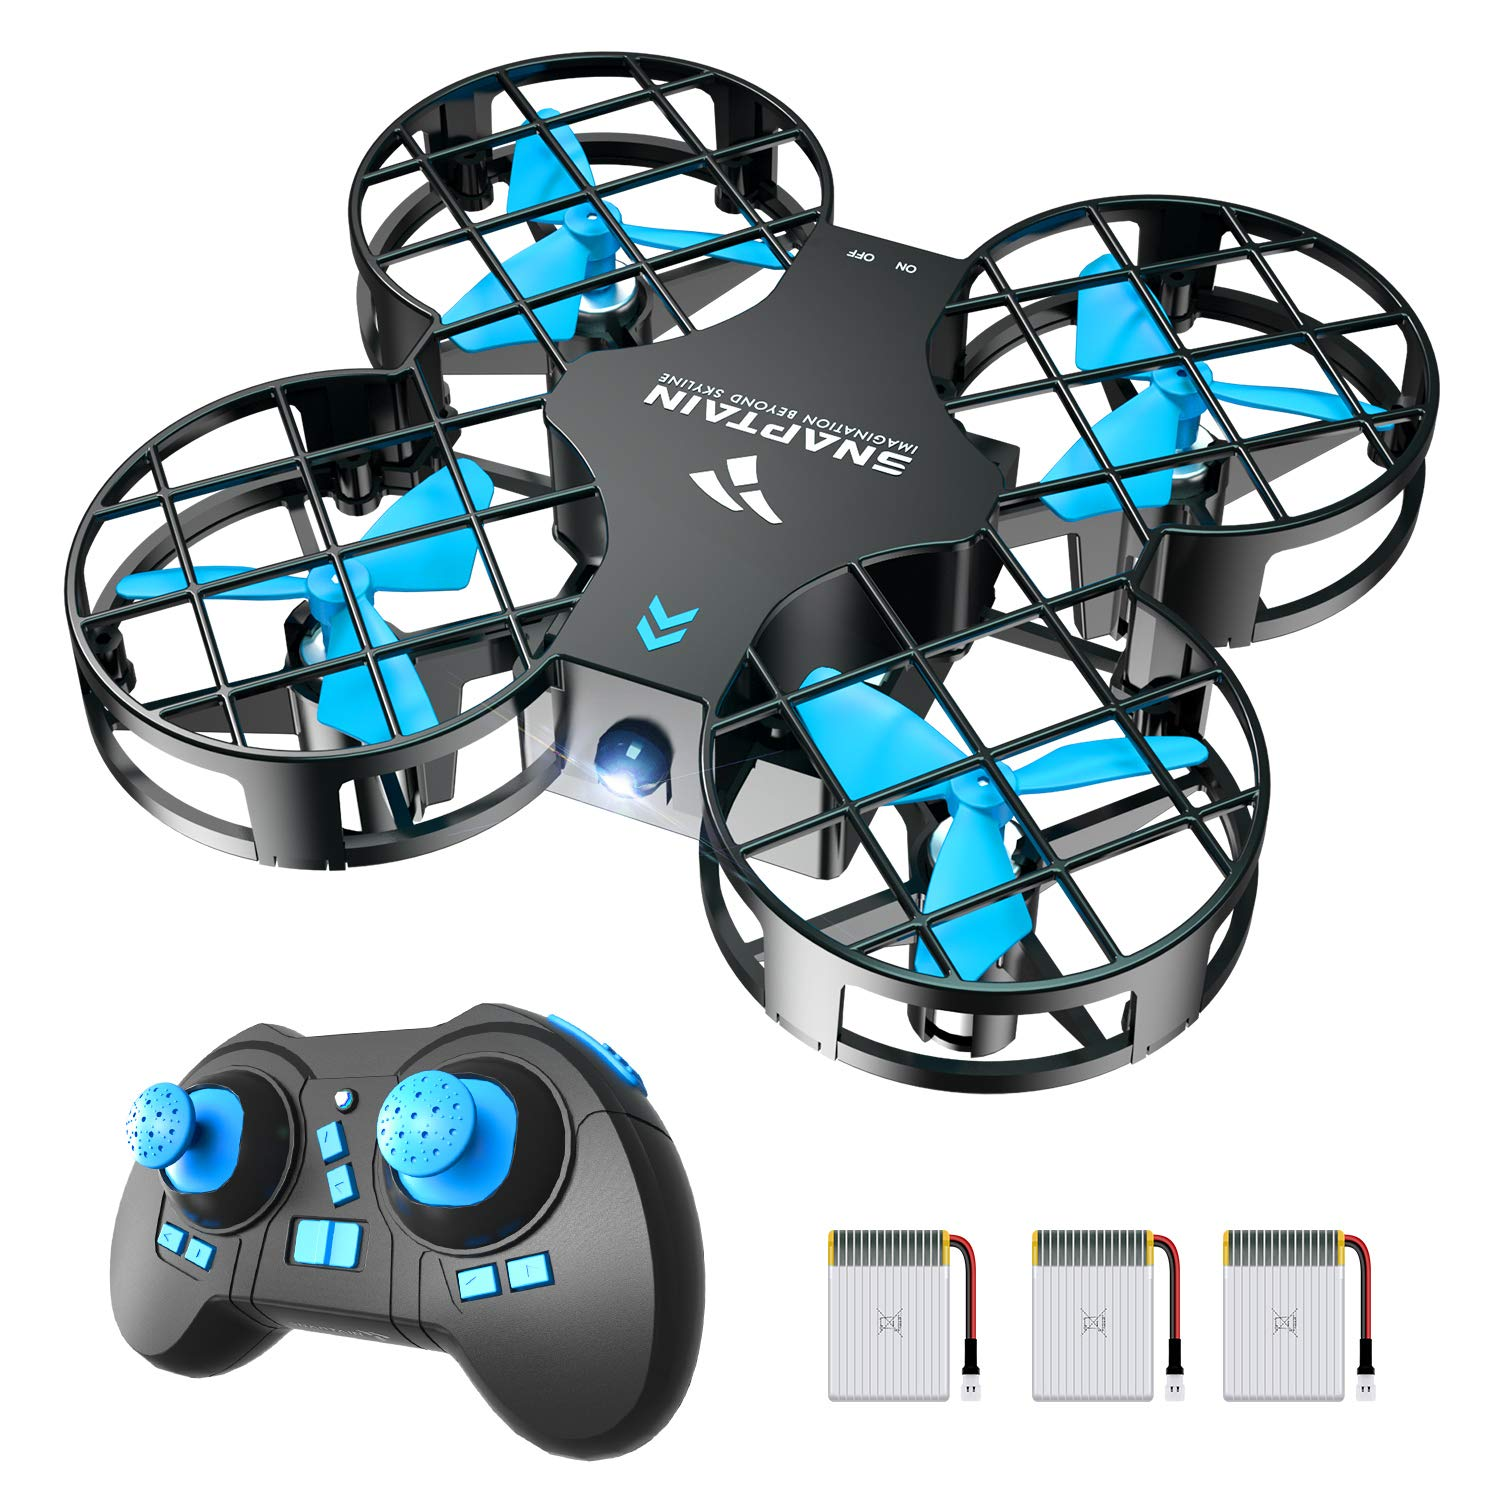 SNAPTAIN H823H Mini Drone for Kids and Beginners, 2.4G Remote Control Quadcopter with 3 Rechargeable Batteries, Altitude Hold, Headless Mode, 3D Flips, One Key Return, Toys for Children, Blue